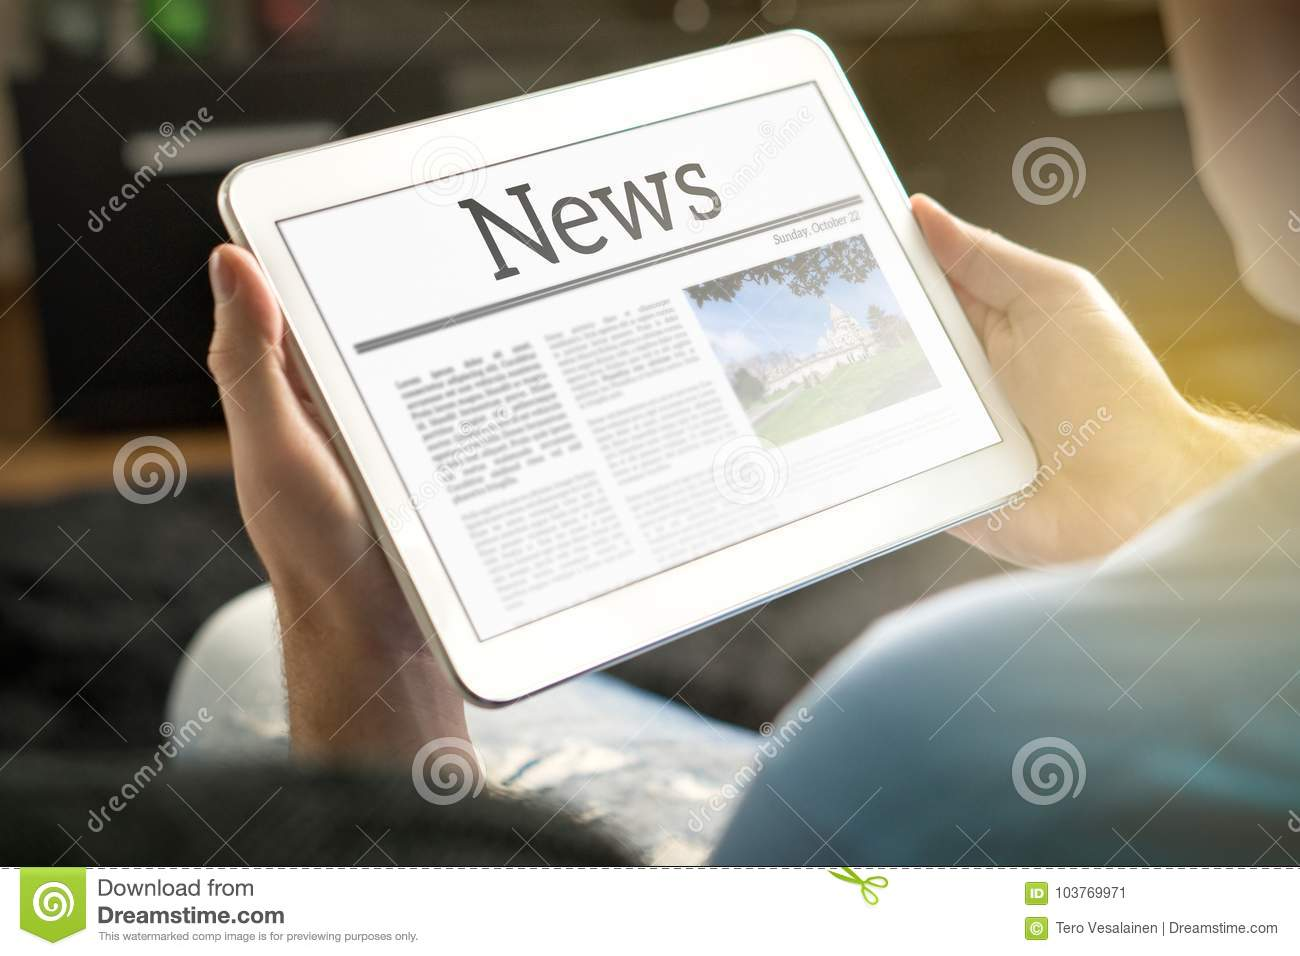 Man reading the news on tablet at home.